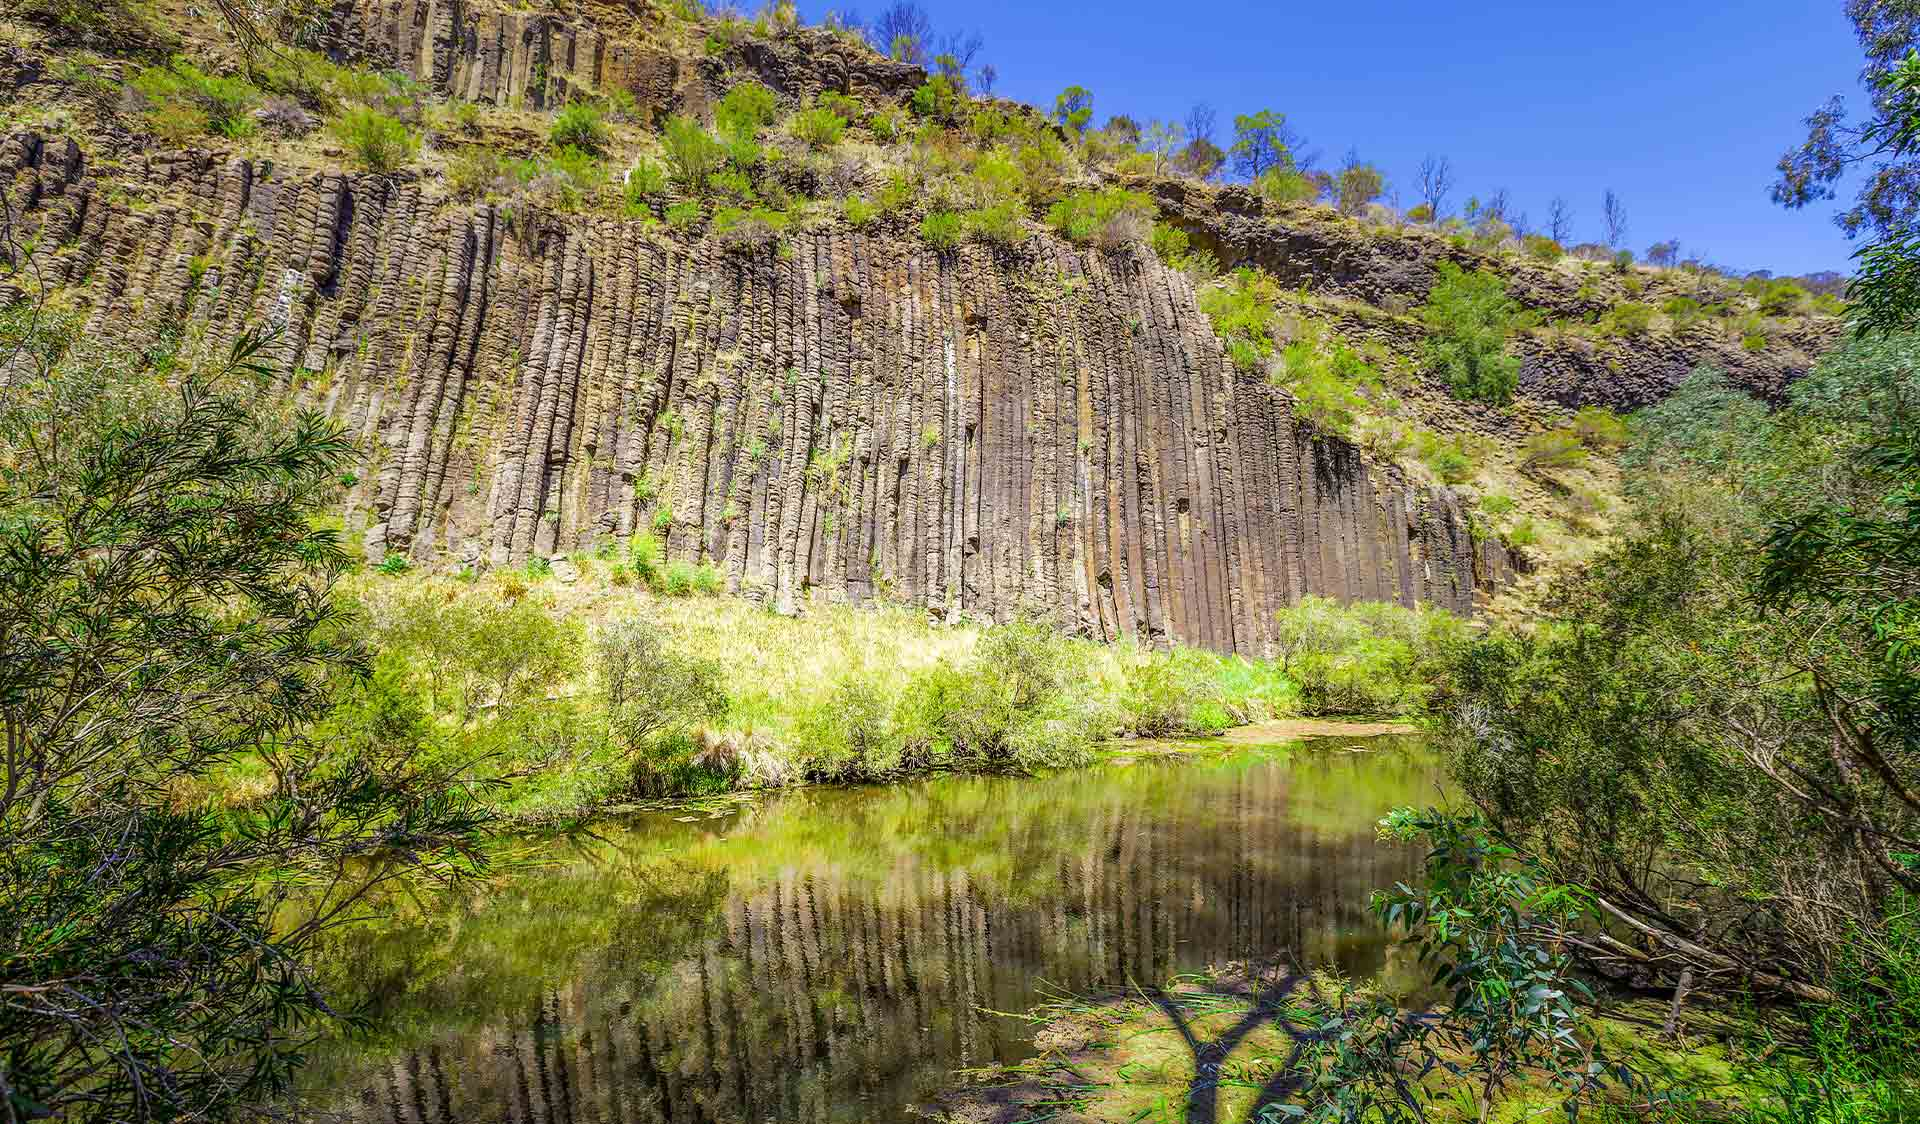 The rock formation know as the Organ Pipes from which the national park is named